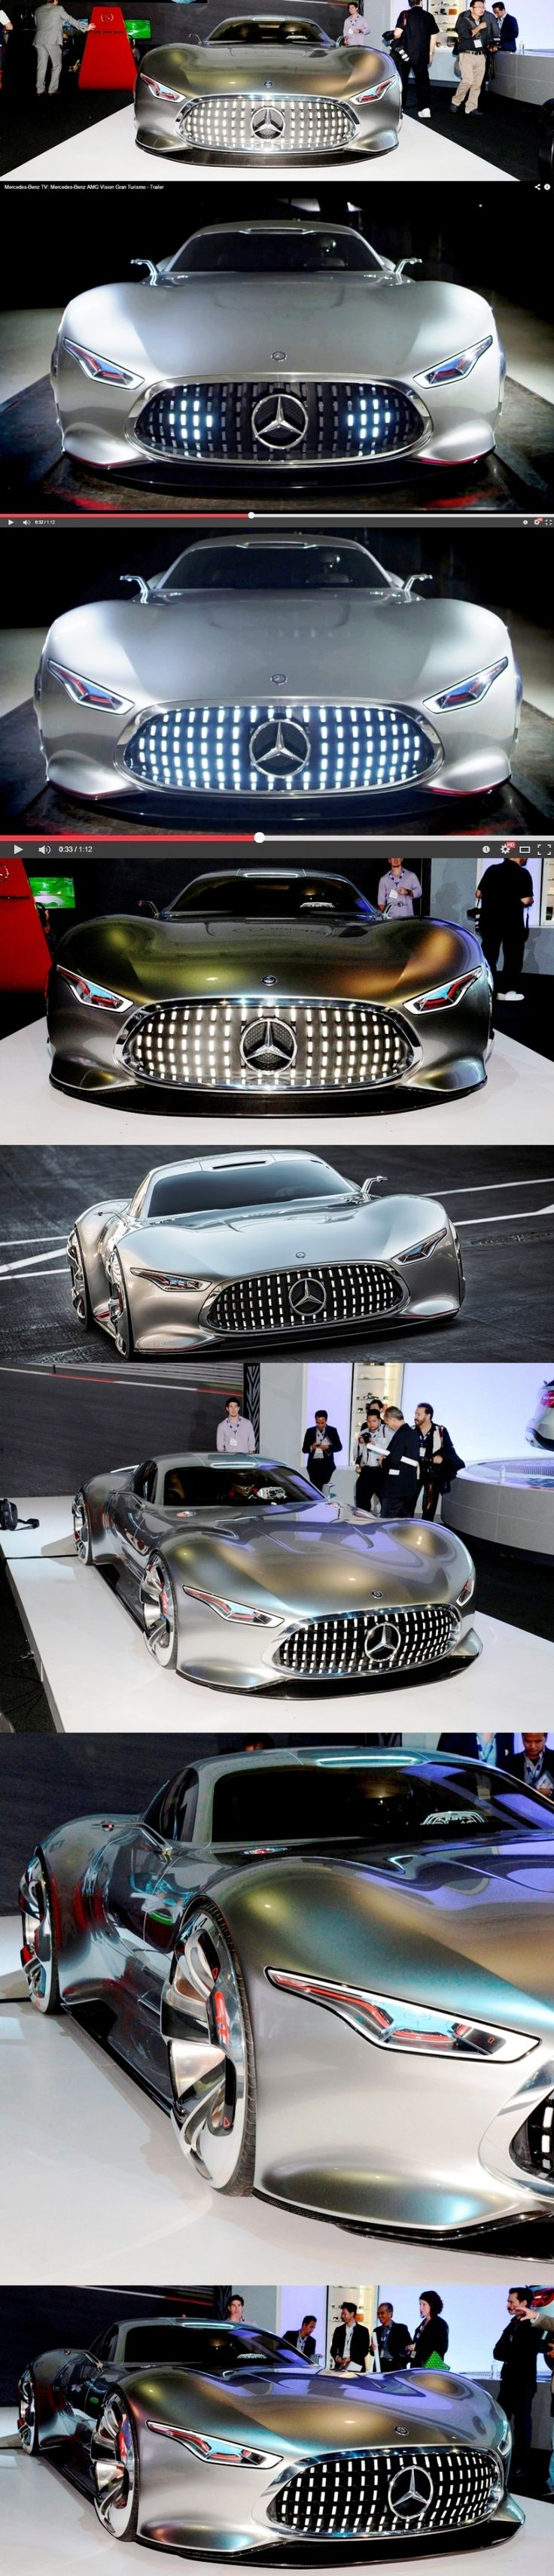 "AMG Vision Gran Turismo (^.^) Thanks, Pinterest Pinners, for stopping by, viewing, re-pinning, & following my boards. Have a beautiful day! ^..^ and ""Feel free to share on Pinterest ^..^ #cars"